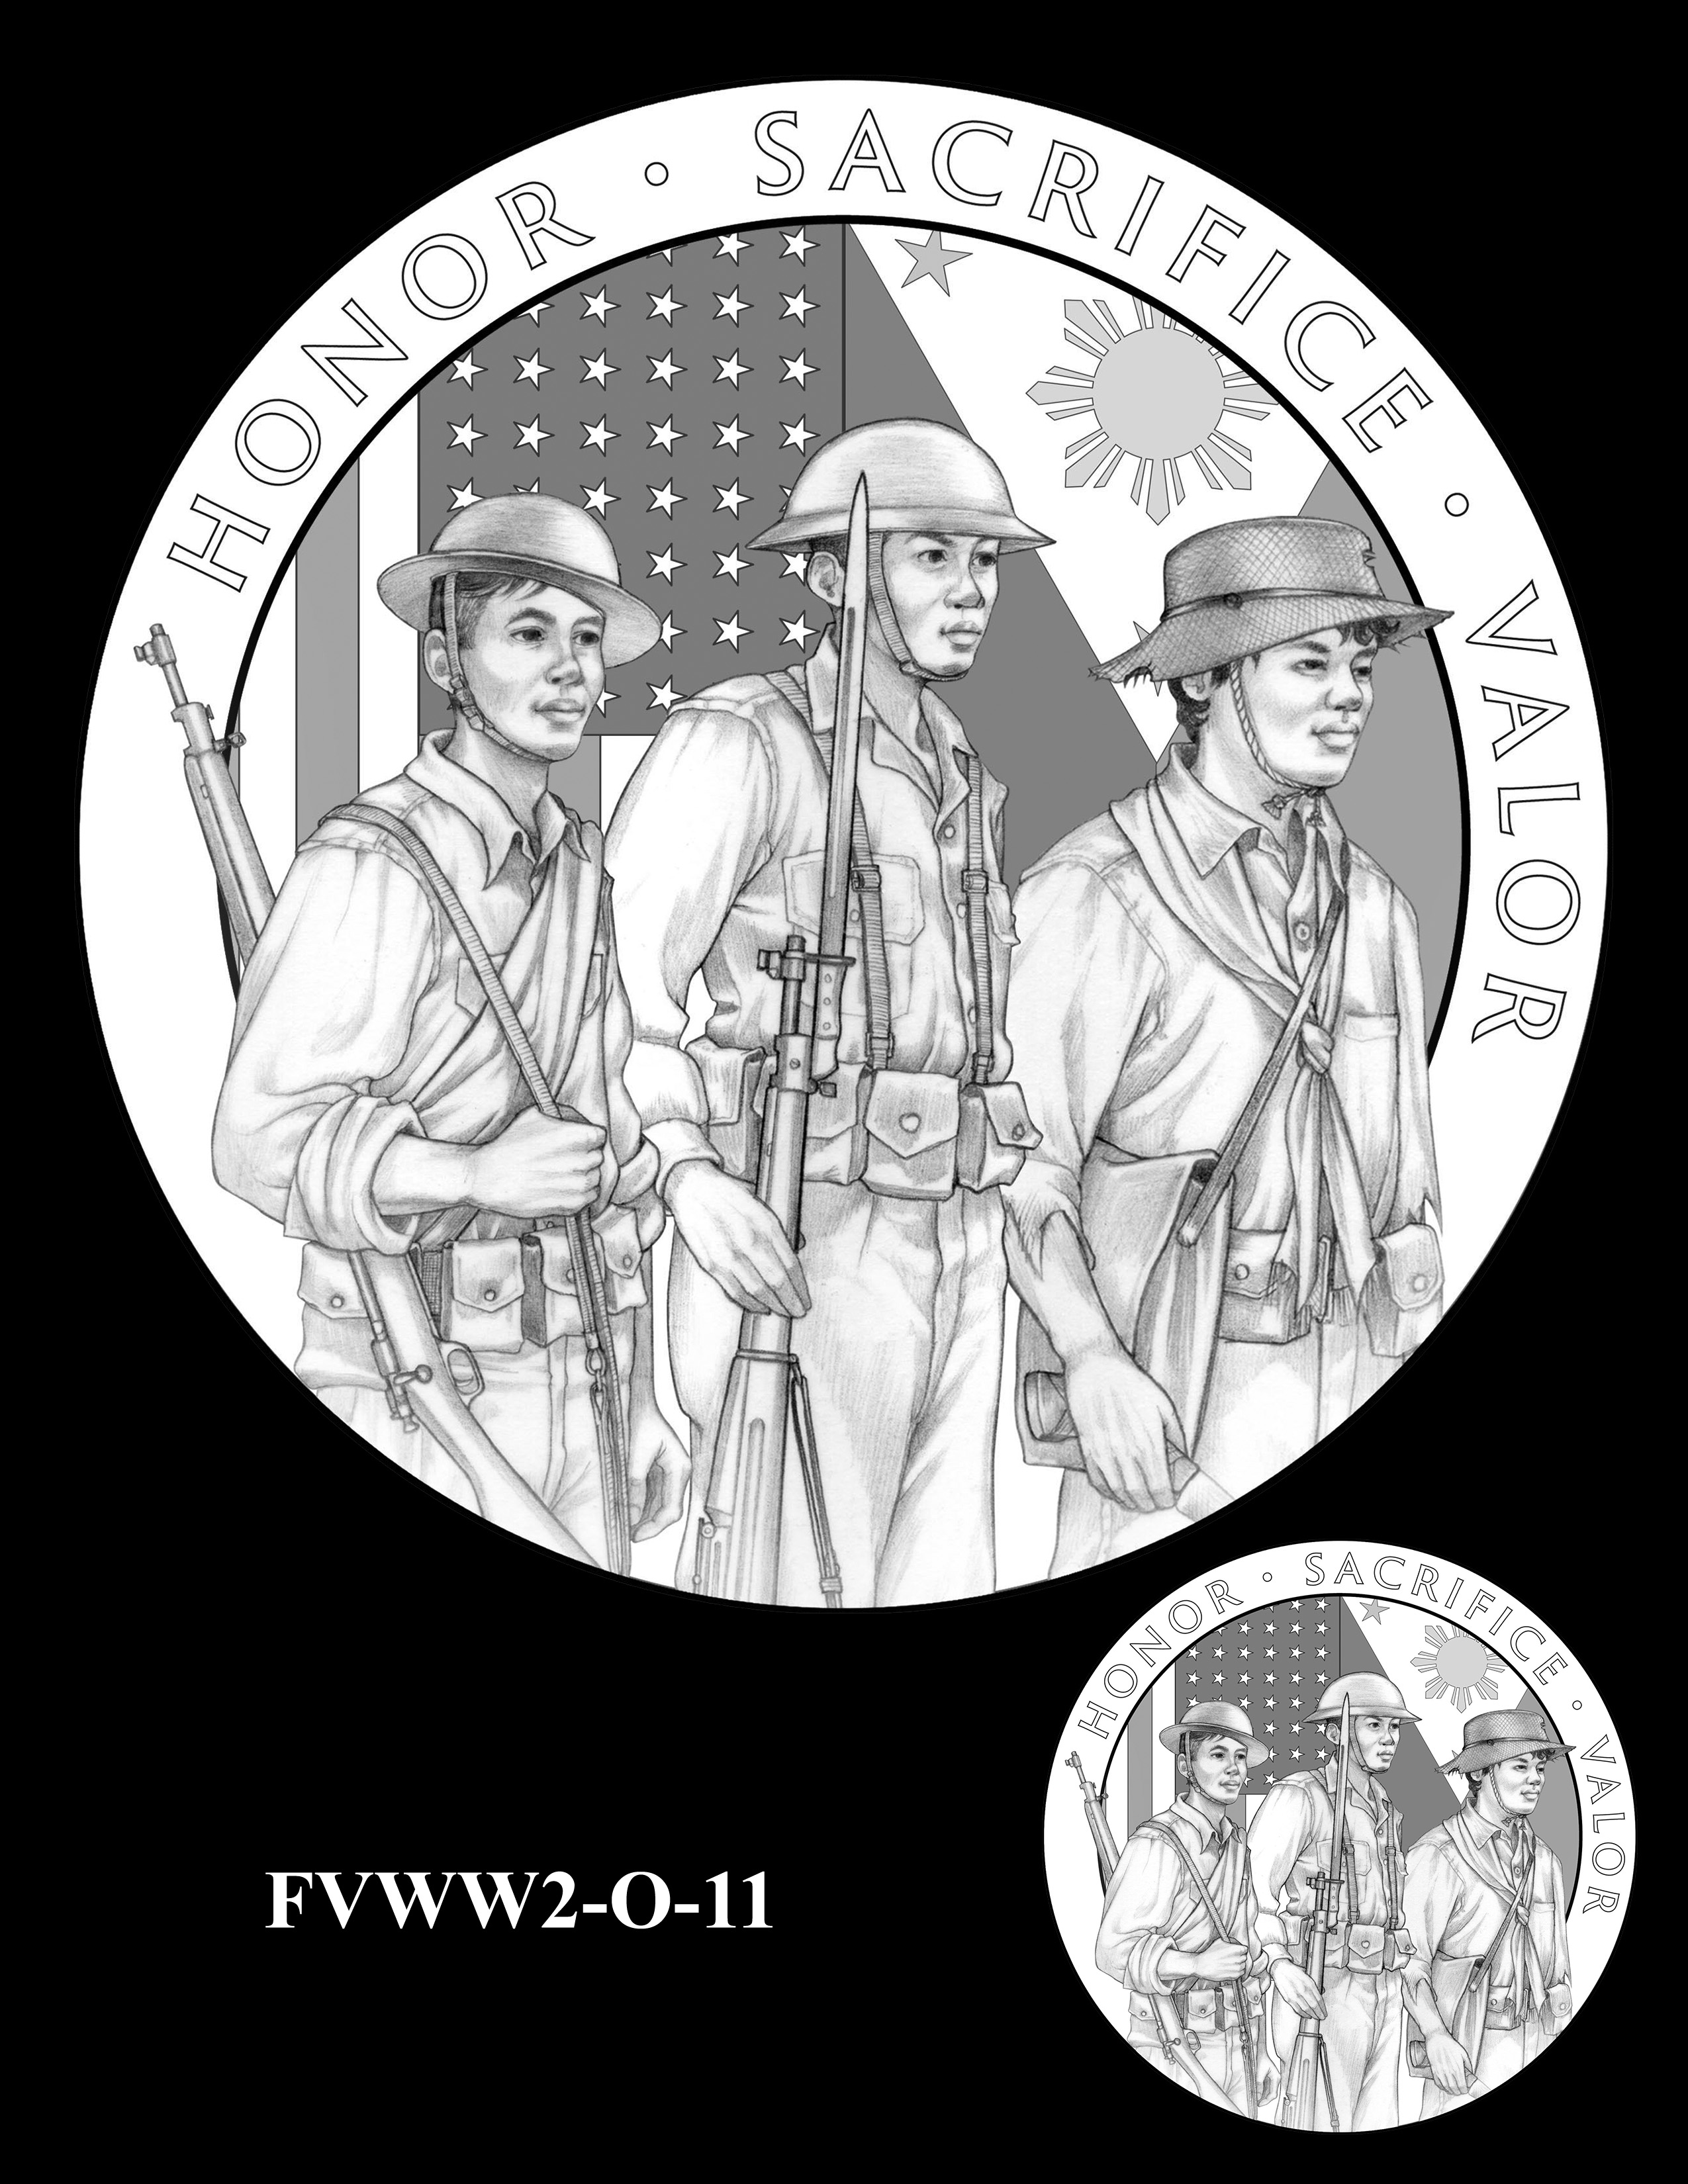 FVWW2-O-11 -- Filipino Veterans of World War II Congressional Gold Medal